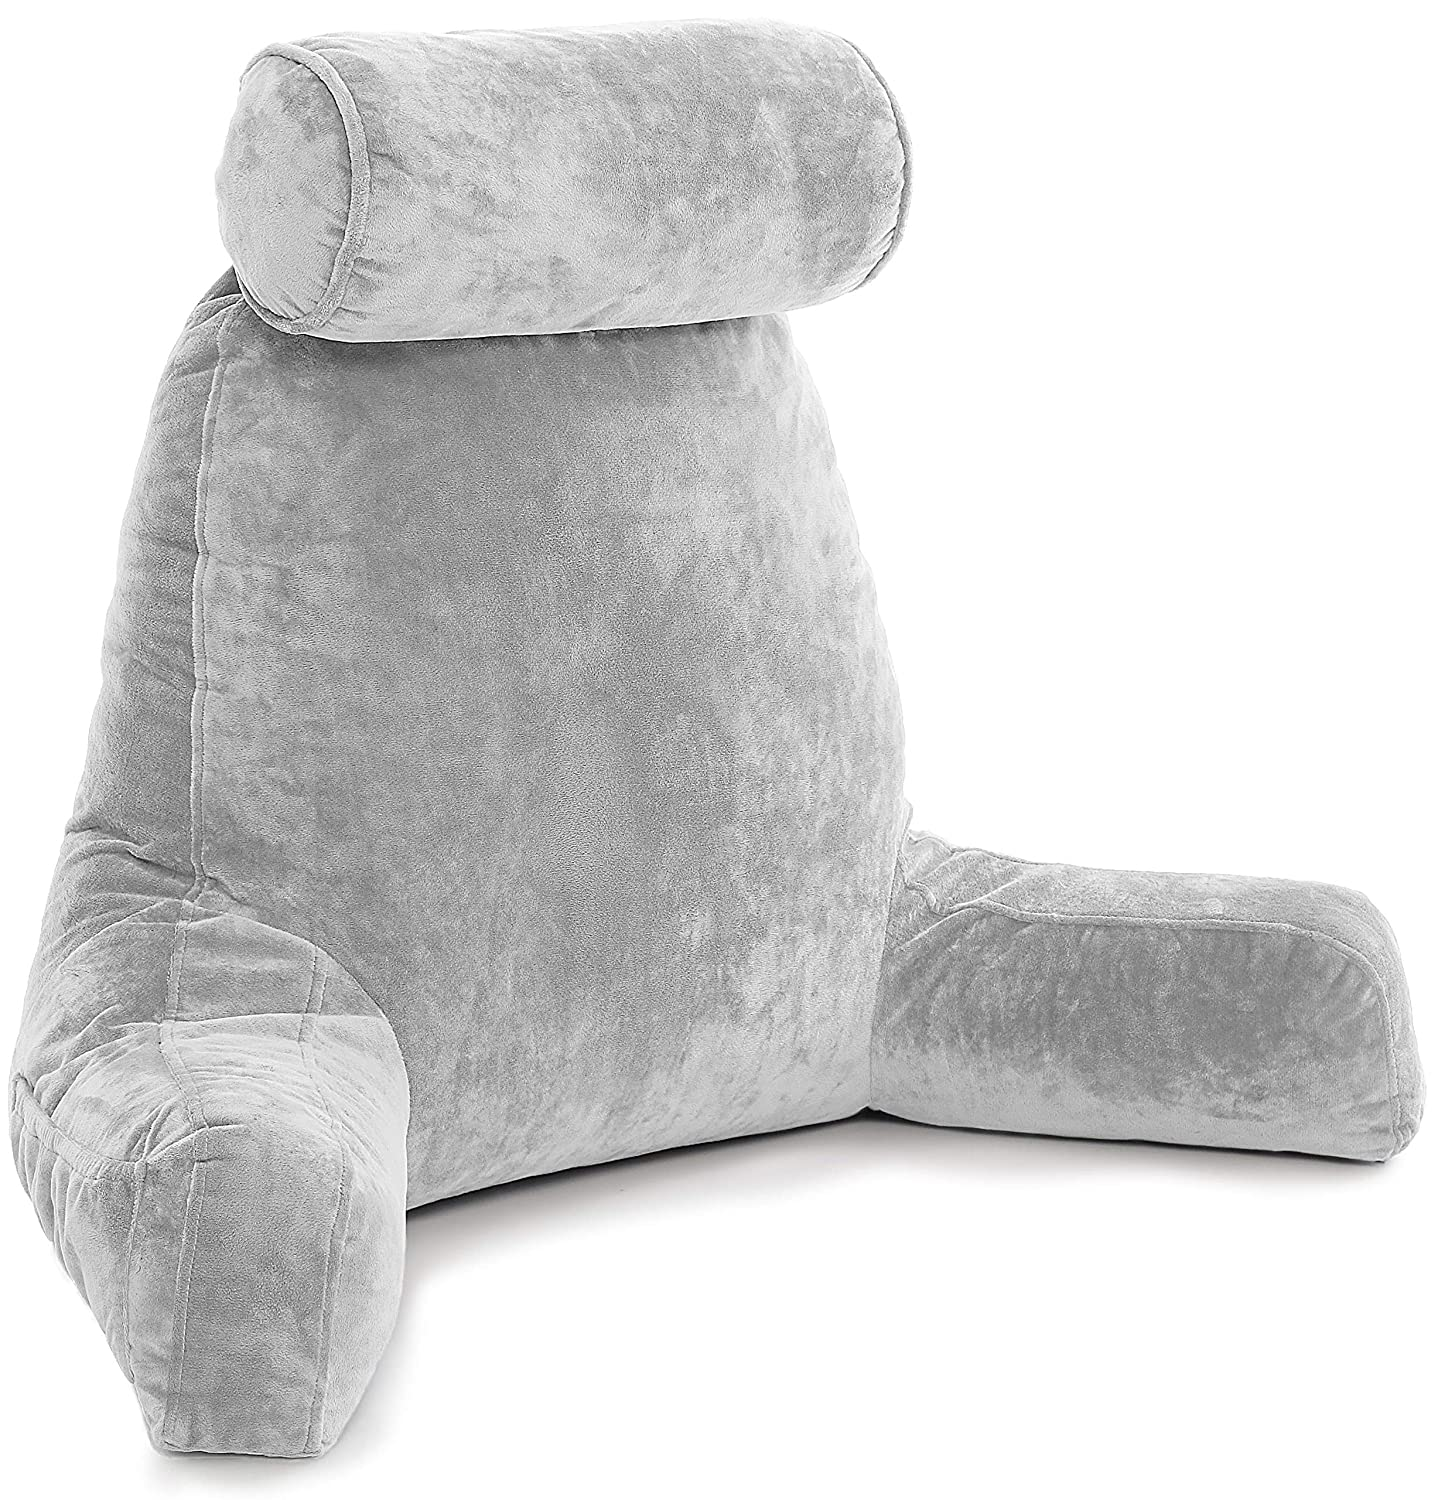 Husband Pillow - Light Grey, Big Backrest Reading Bed Rest Pillow with Arms, Plush Memory Foam Fill, Remove Neck Roll Off Bungee, Change Covers, Zipper On Shell of Bed Chair for Adjustable Loft